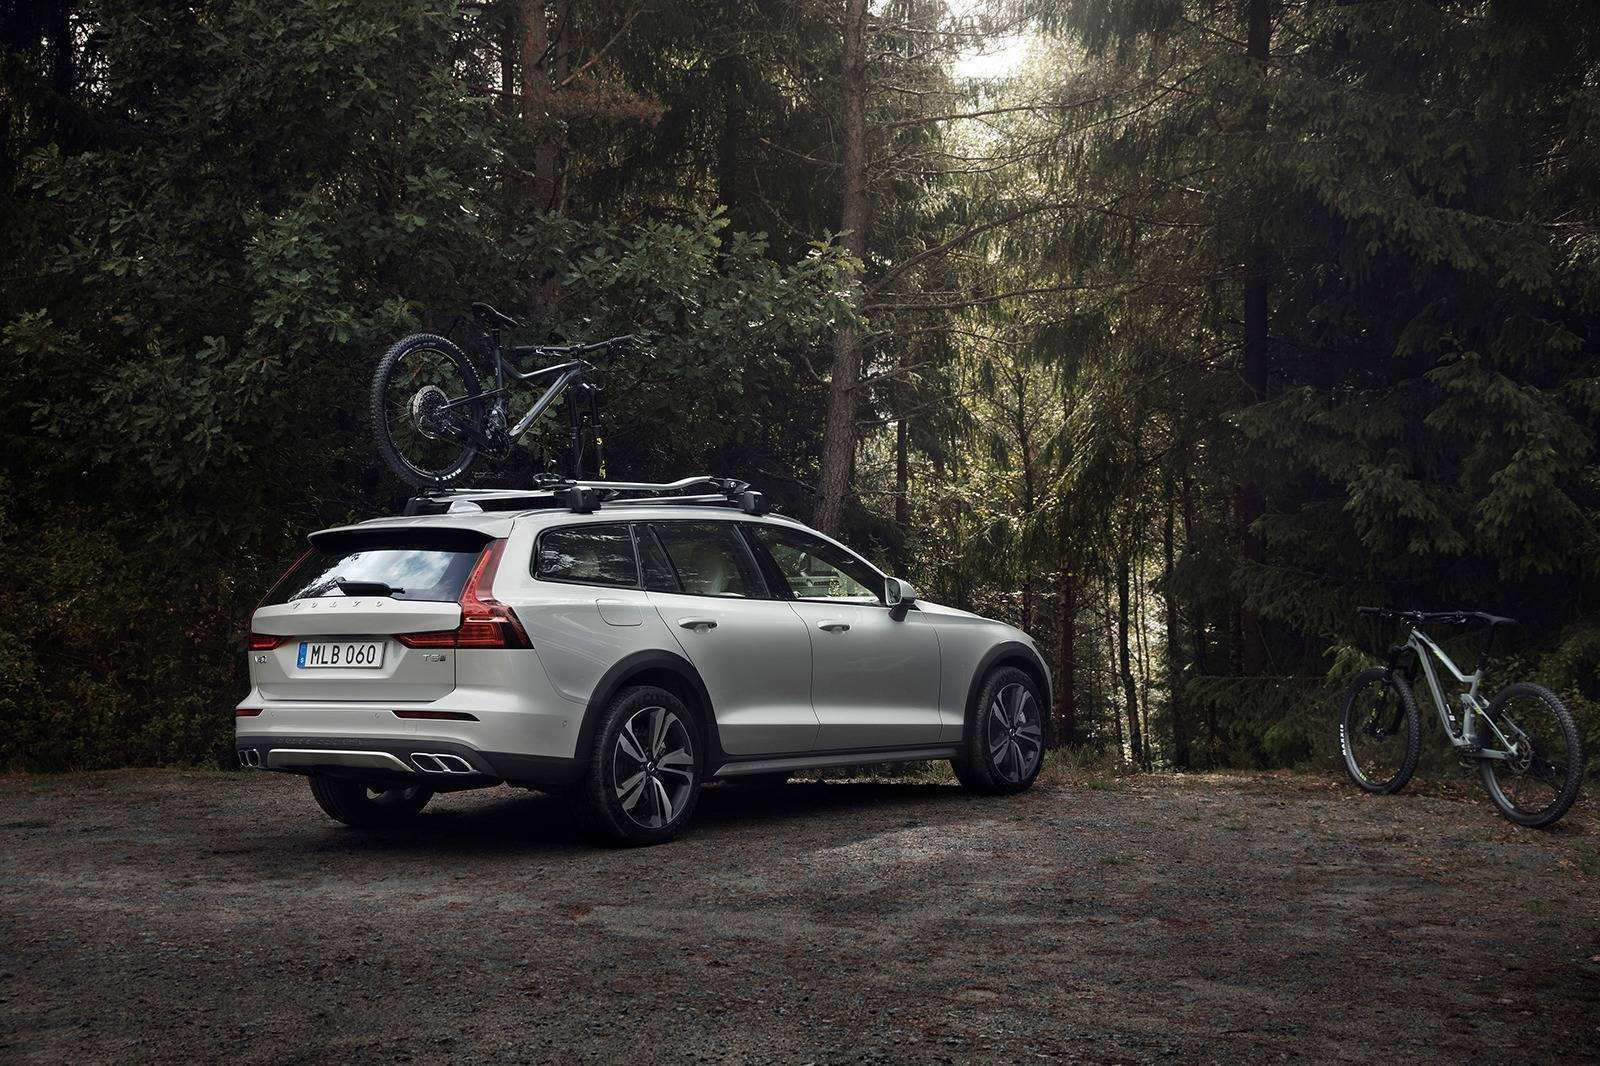 83 New New Volvo V60 2019 Ground Clearance New Engine New Concept by New Volvo V60 2019 Ground Clearance New Engine